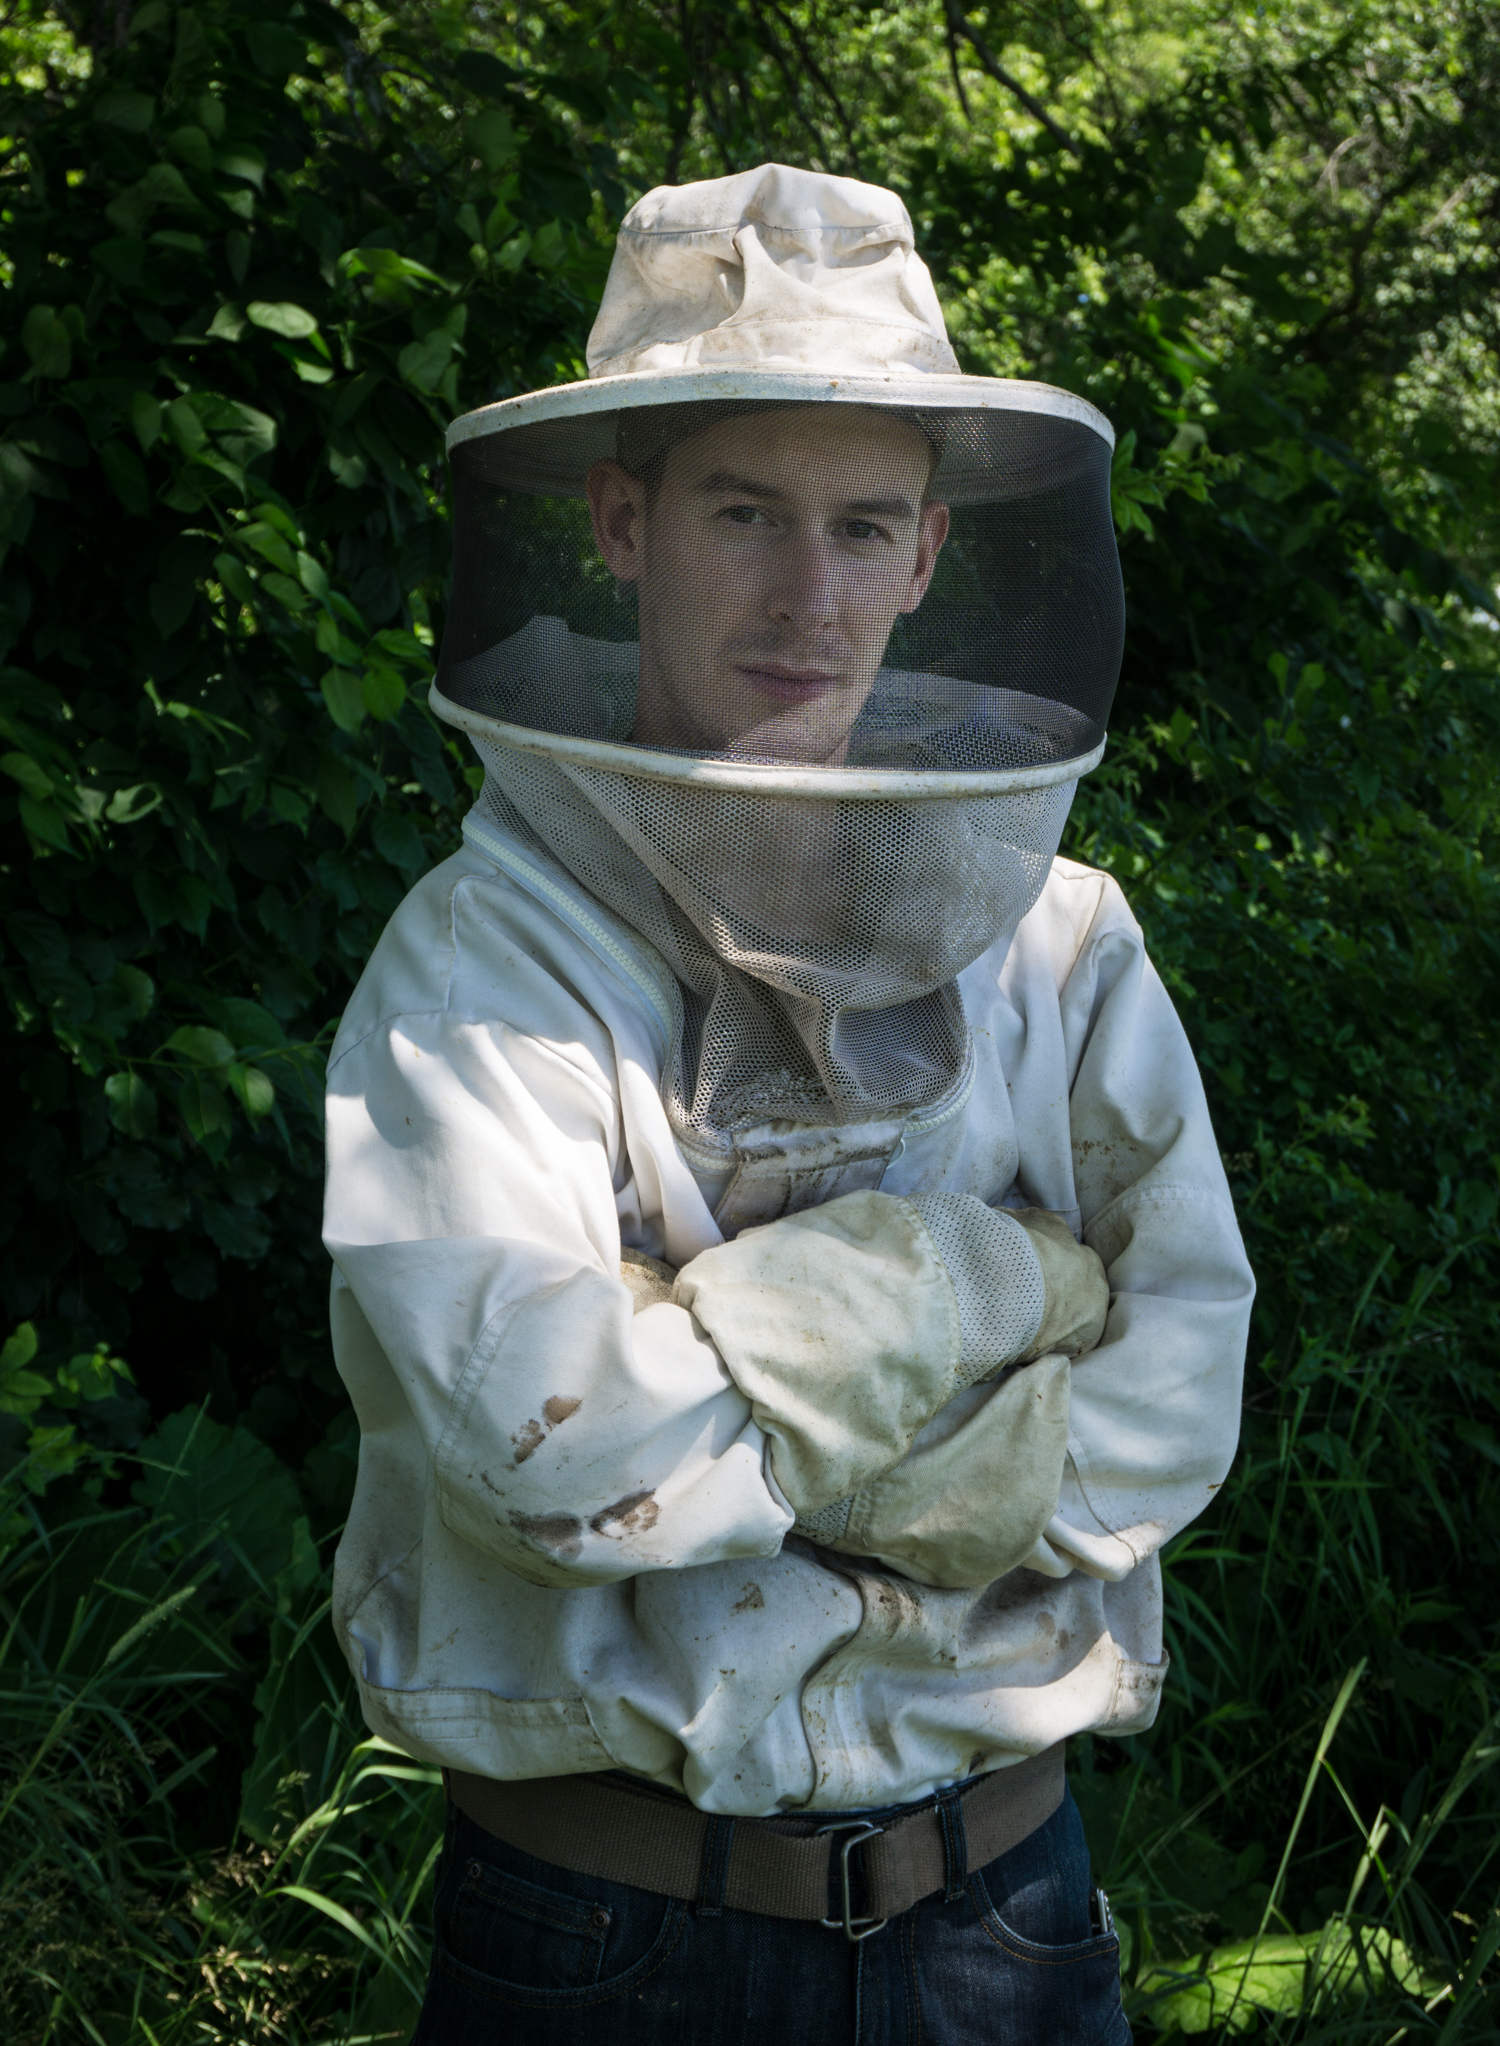 Beekeeper Evan Reseska has been working with bees his whole life along side his Dad and company founder Andy Reseska.